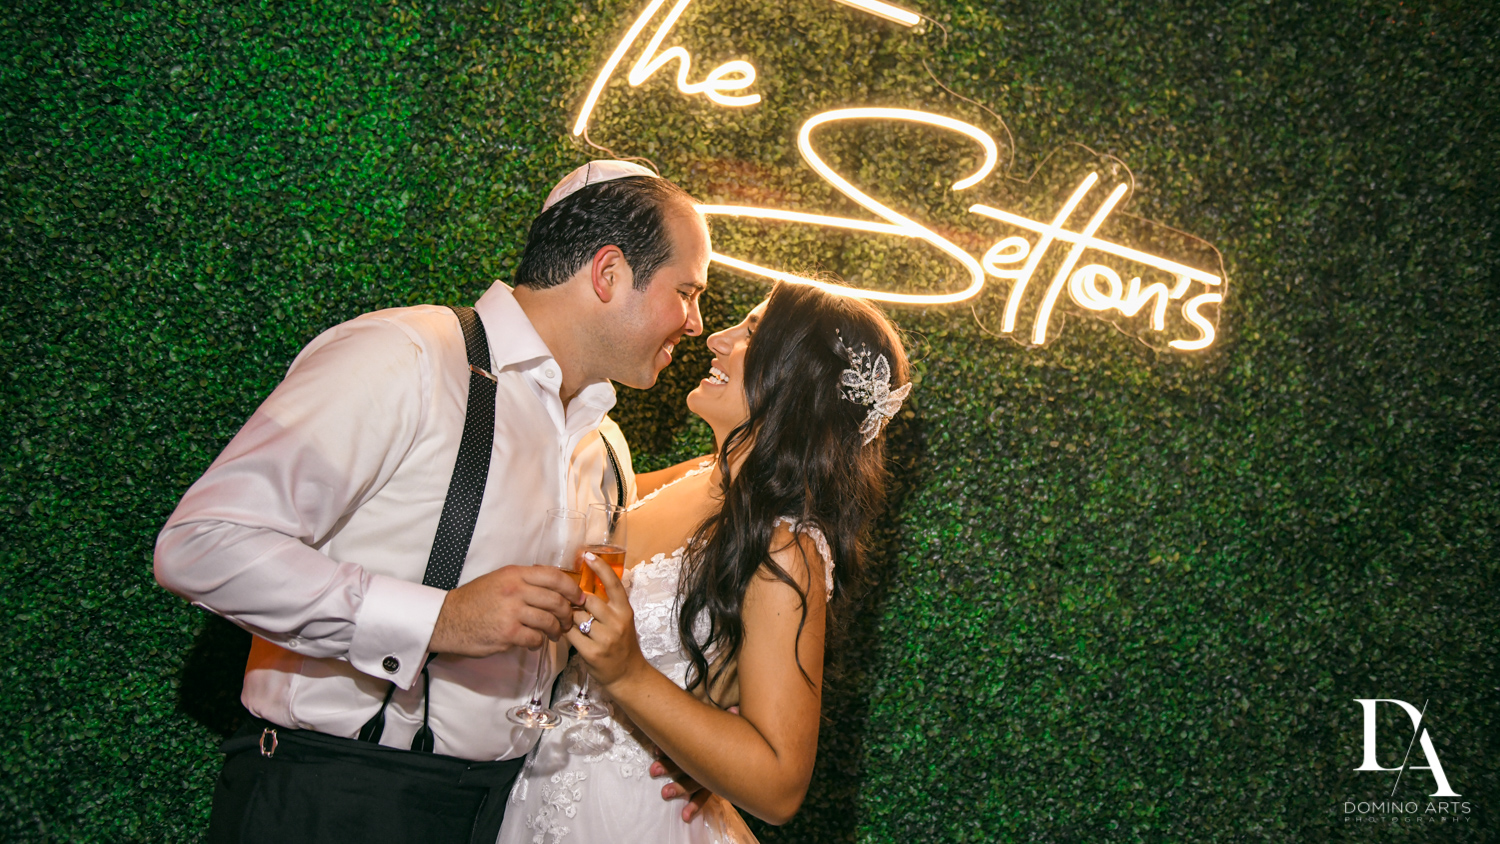 best bride and groom picture at Elegant Classy Wedding at Trump Doral by Domino Arts Photography